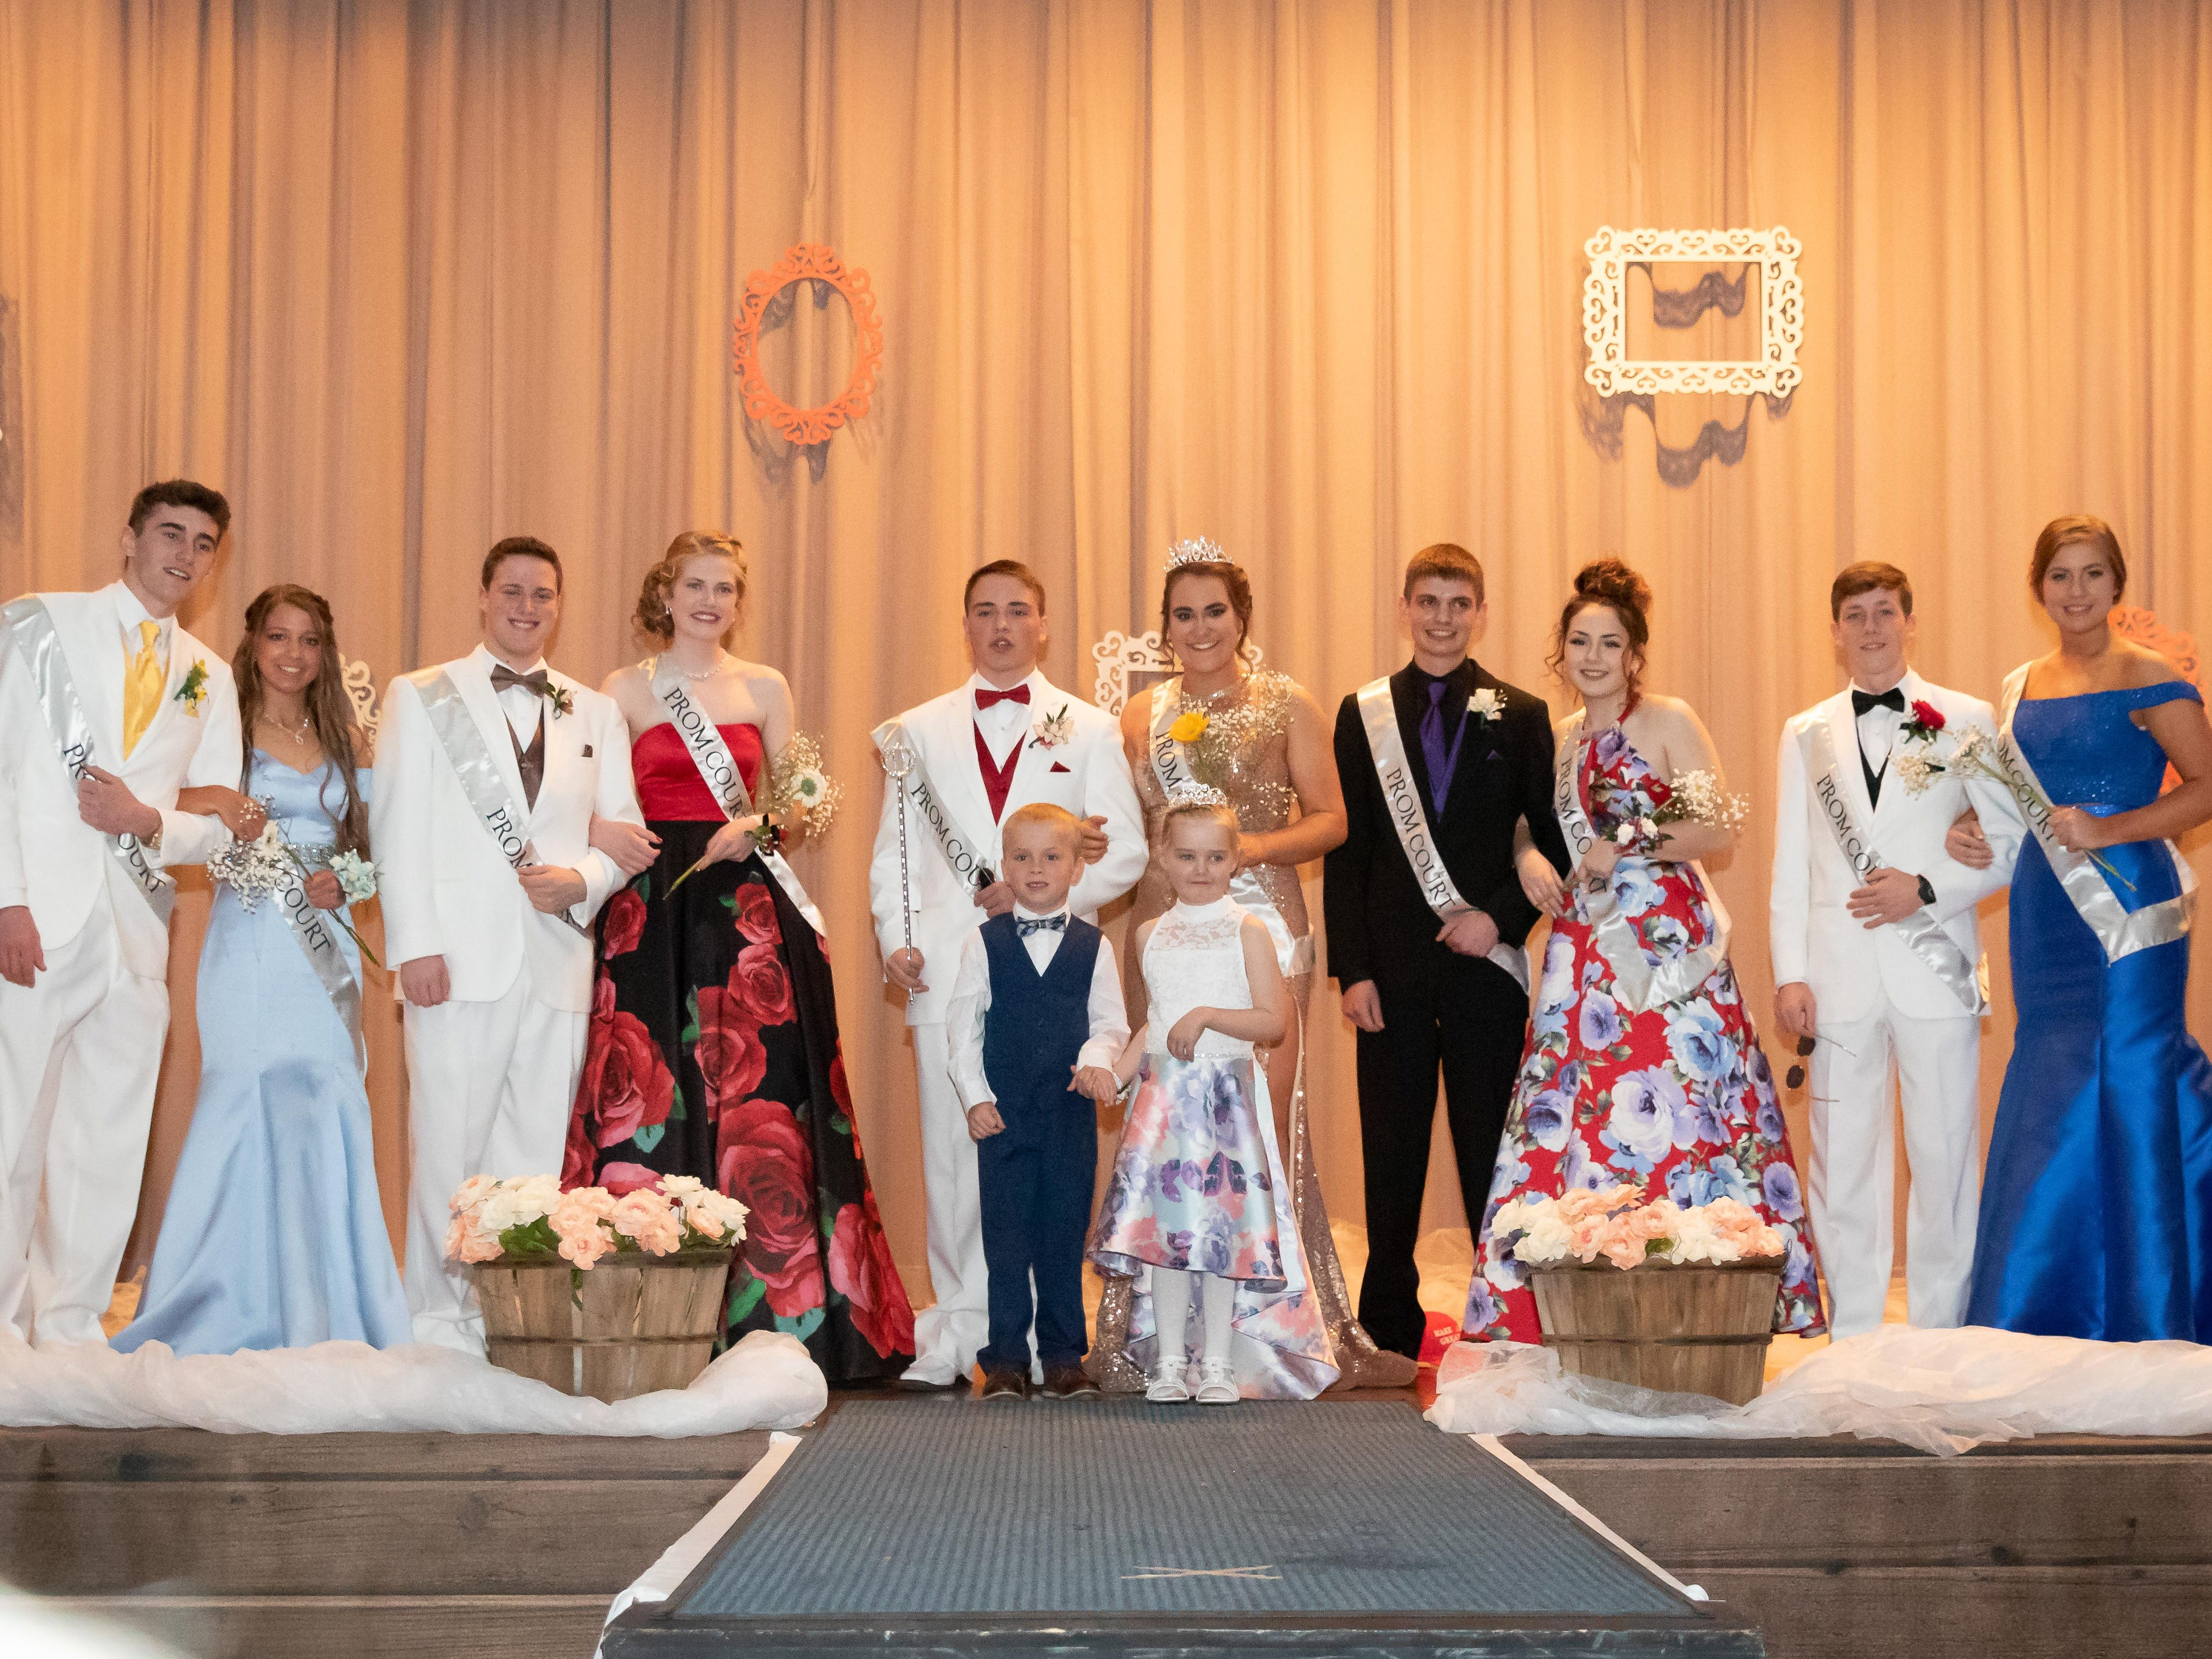 Members of the 2019 Assumption High School prom court are Dennis Matott, Penny Bires, Ryan Hustedt, Paige Donahue, king Jaret Hartley, queen Calli Statz, Dan Esser, Abigail Ashbeck, Garrett Dolan and Maddy Bohn. They are pictured with miniature court members Logan Breu and Lux Lobner during the Assumption High School prom on Saturday, April 27, 2019, at the high school in Wisconsin Rapids.